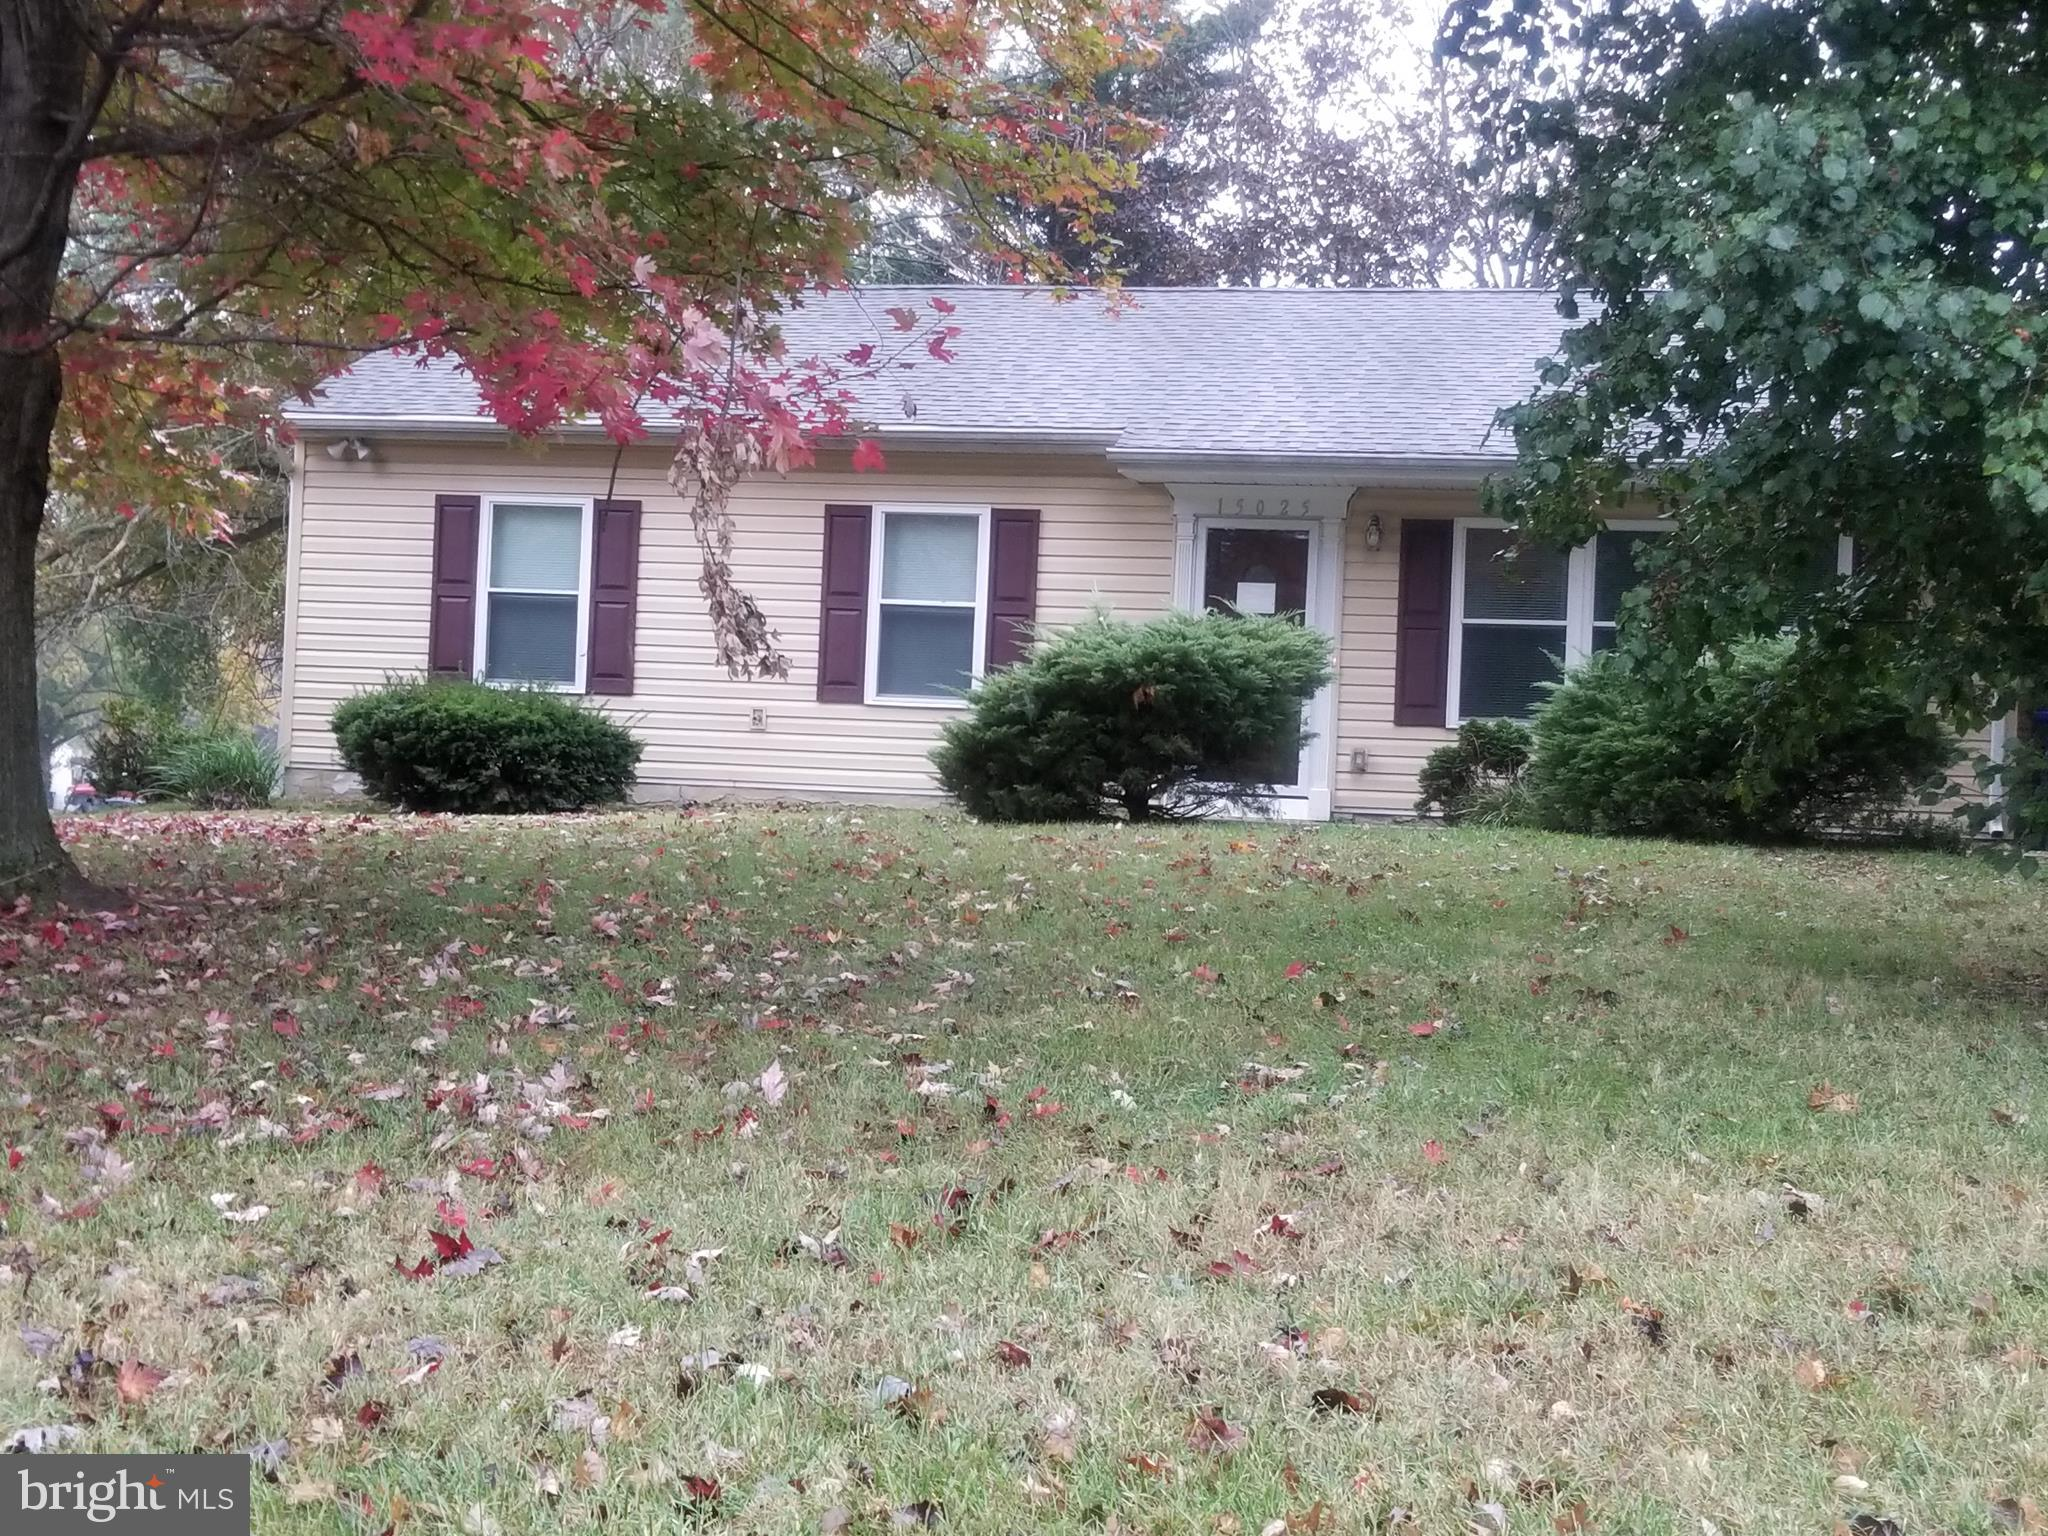 15025 NORTHCOTE LANE, BOWIE, MD 20716